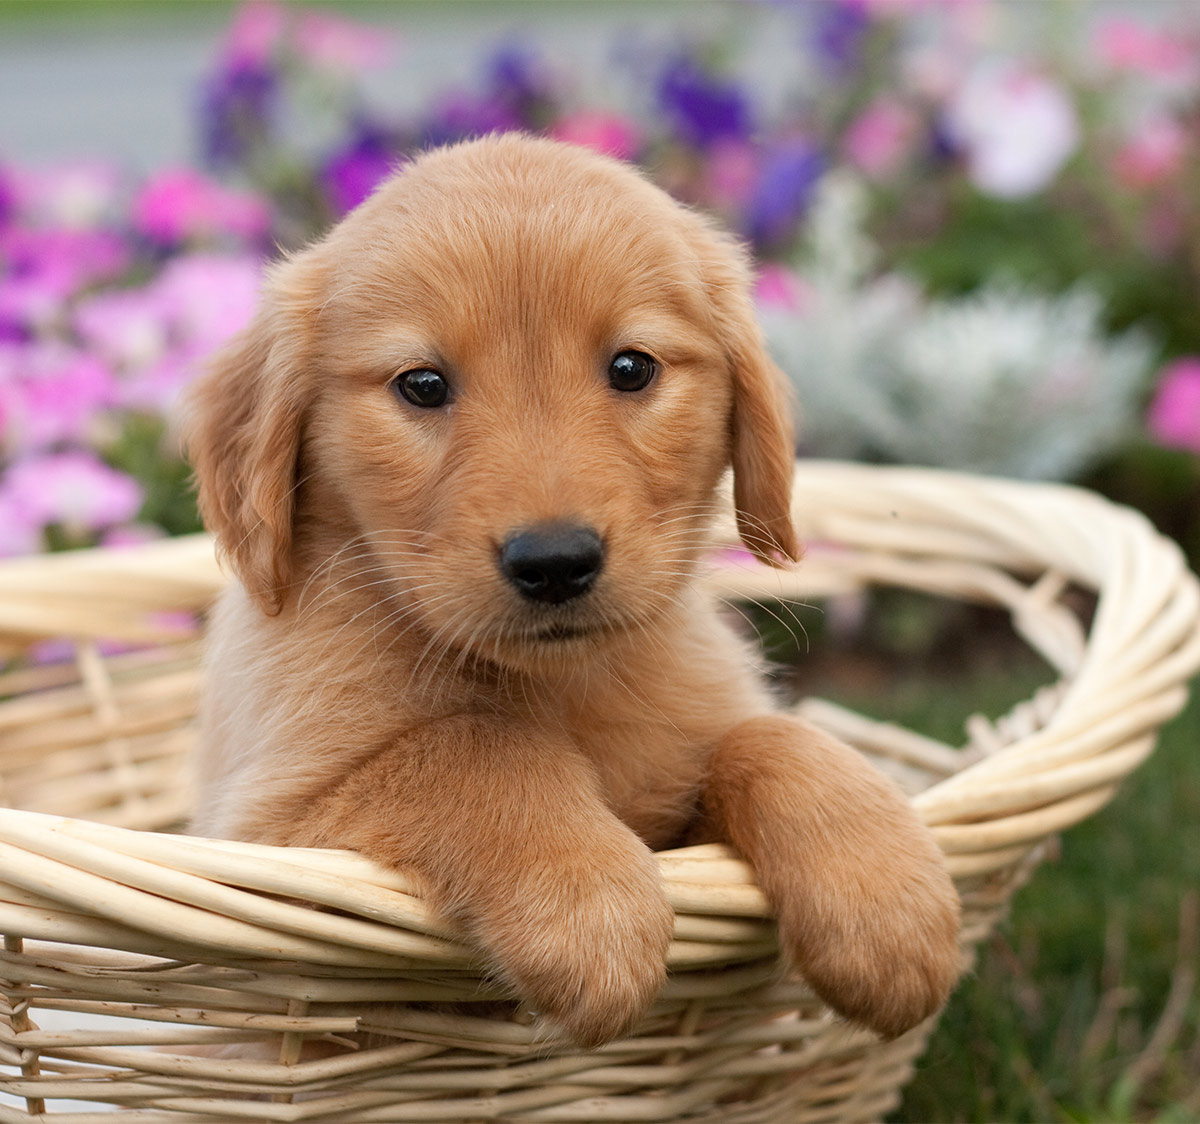 Pictures of Golden Retriever puppies